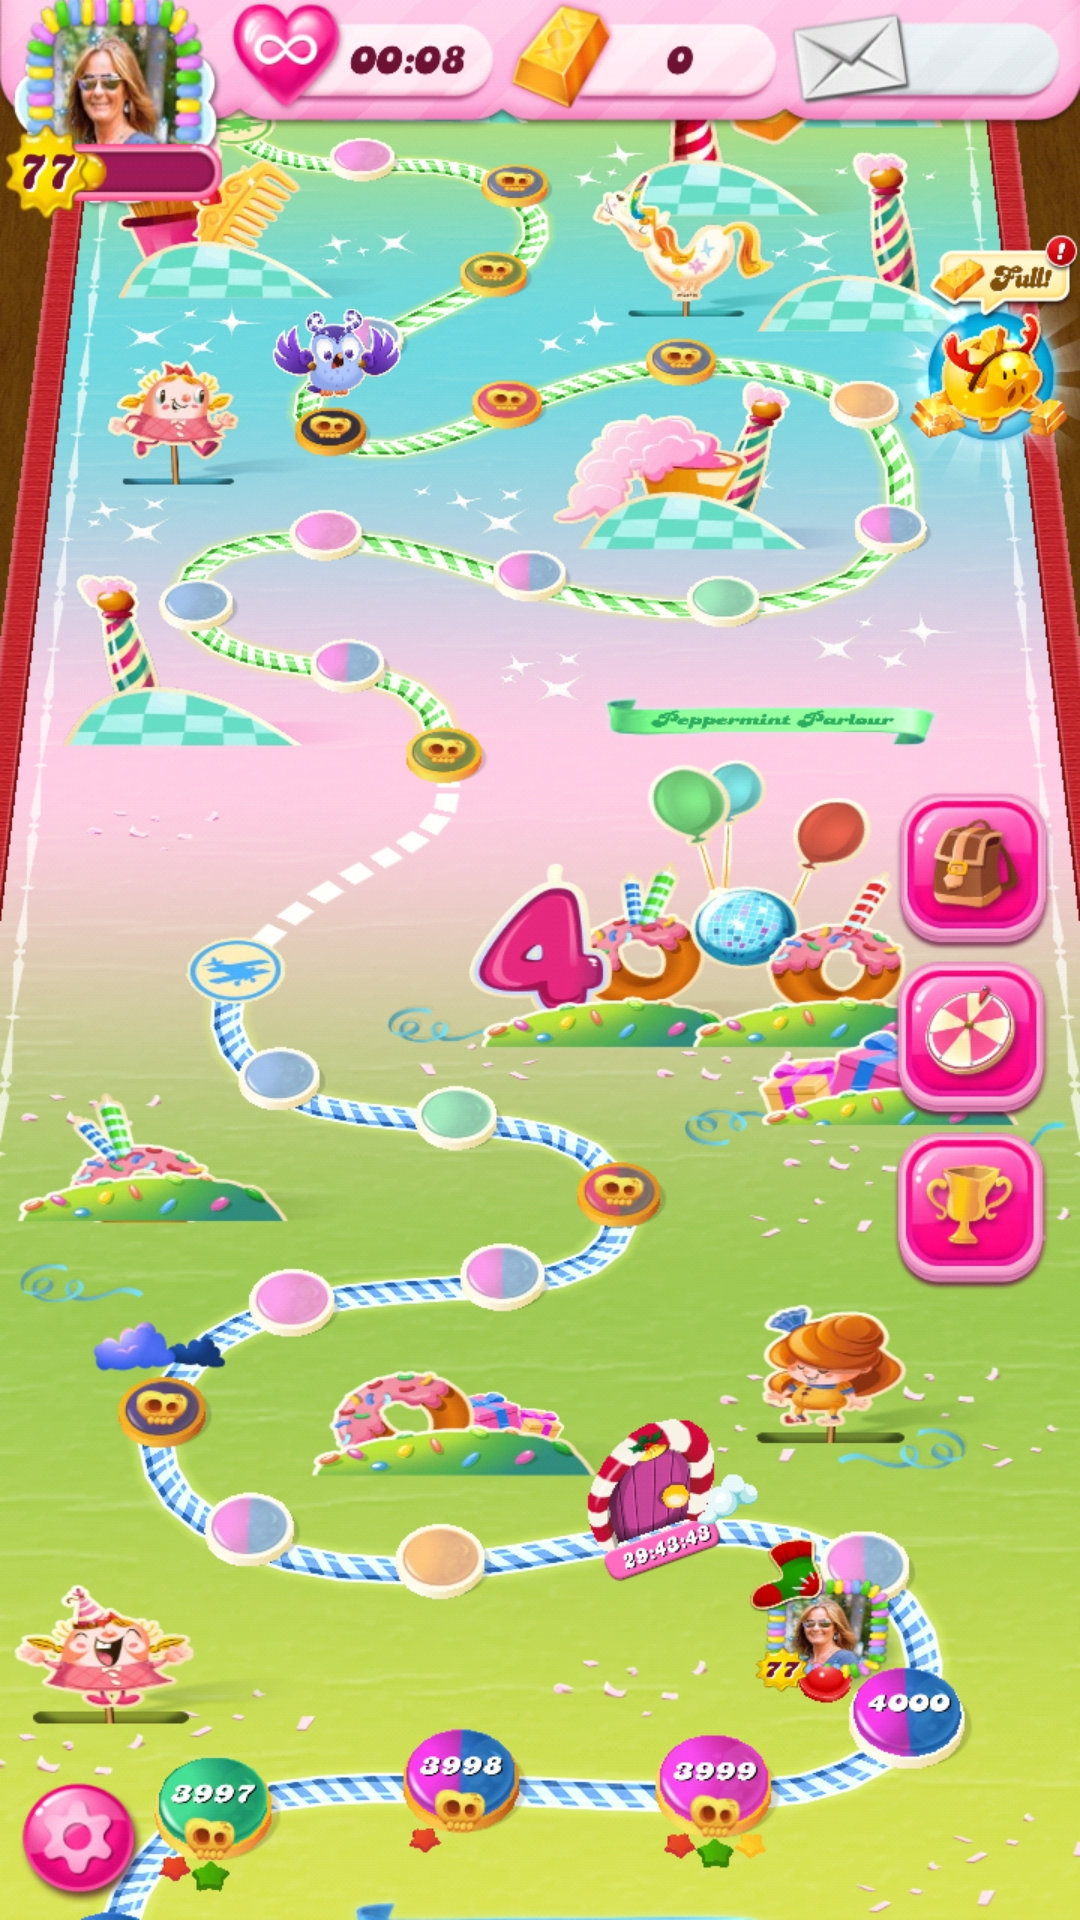 The highest level on candy crush